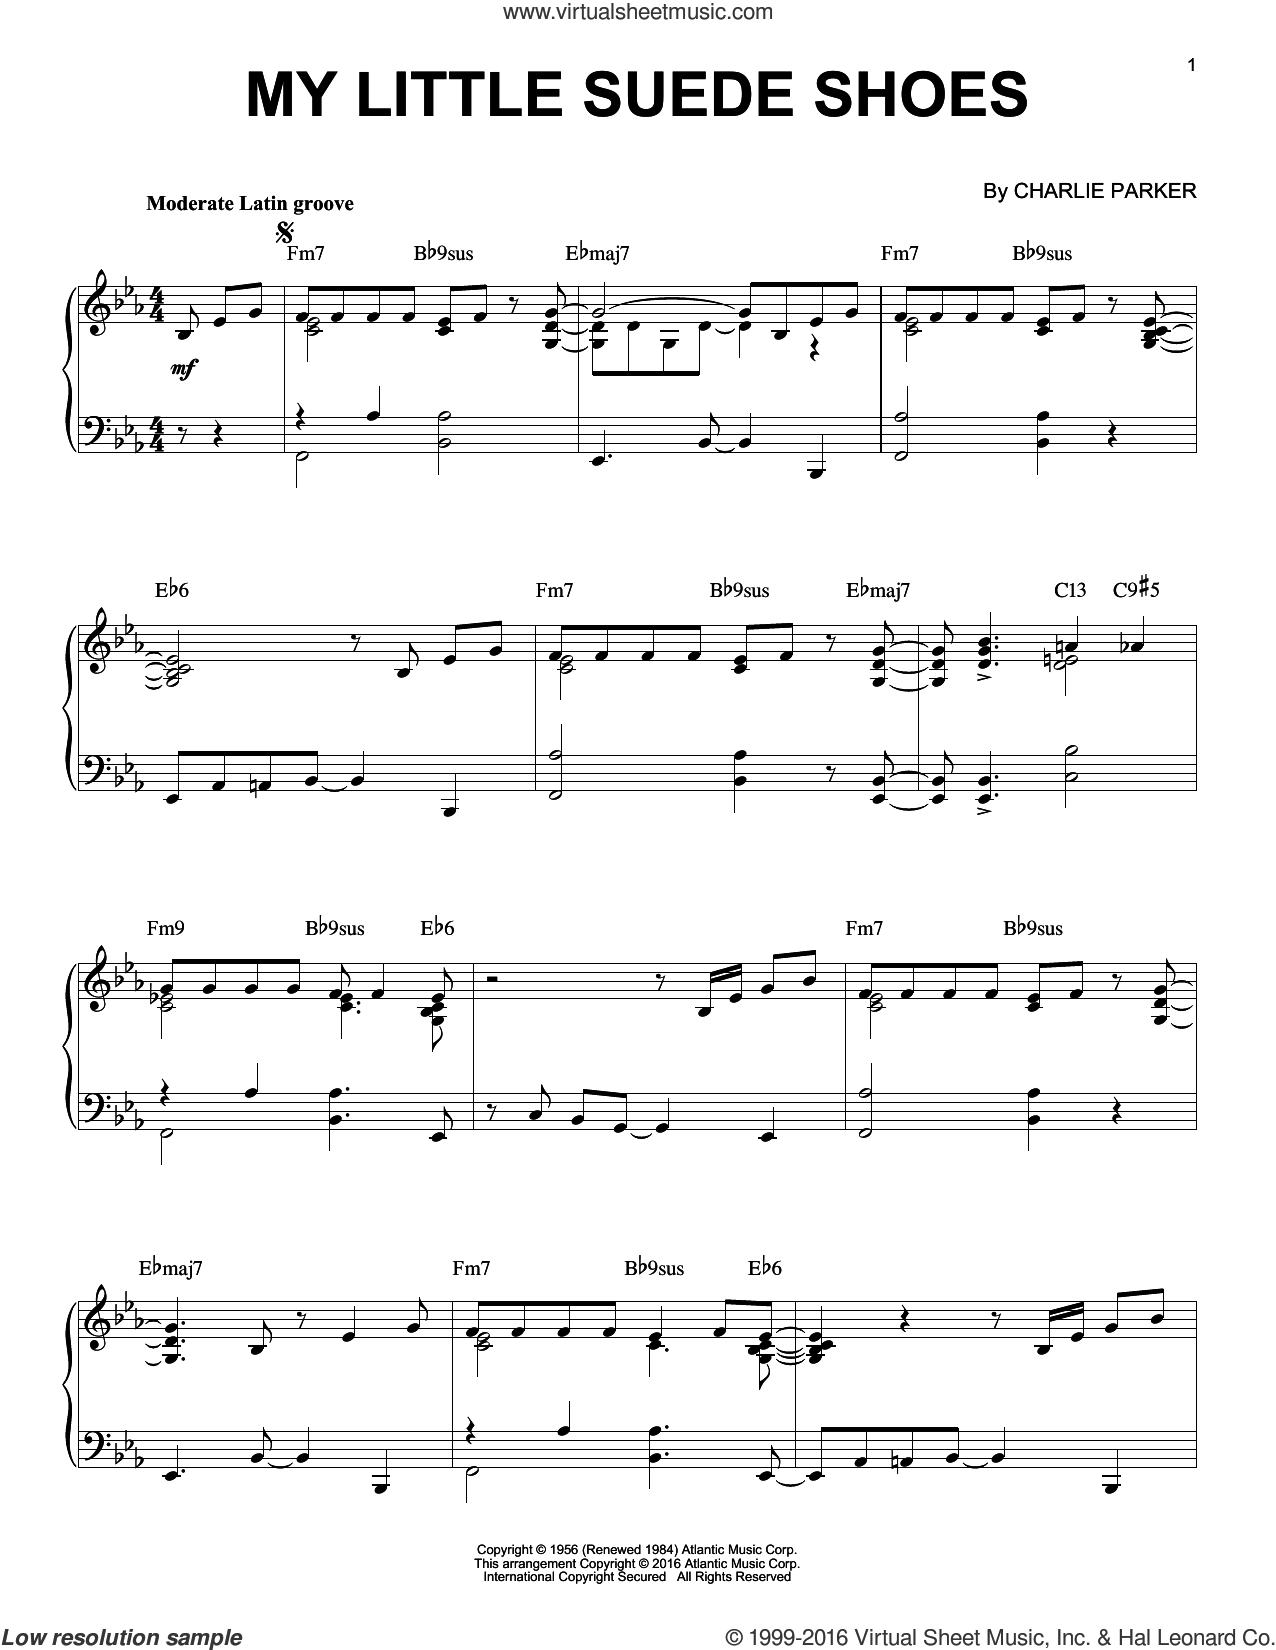 My Little Suede Shoes sheet music for piano solo by Charlie Parker, intermediate skill level